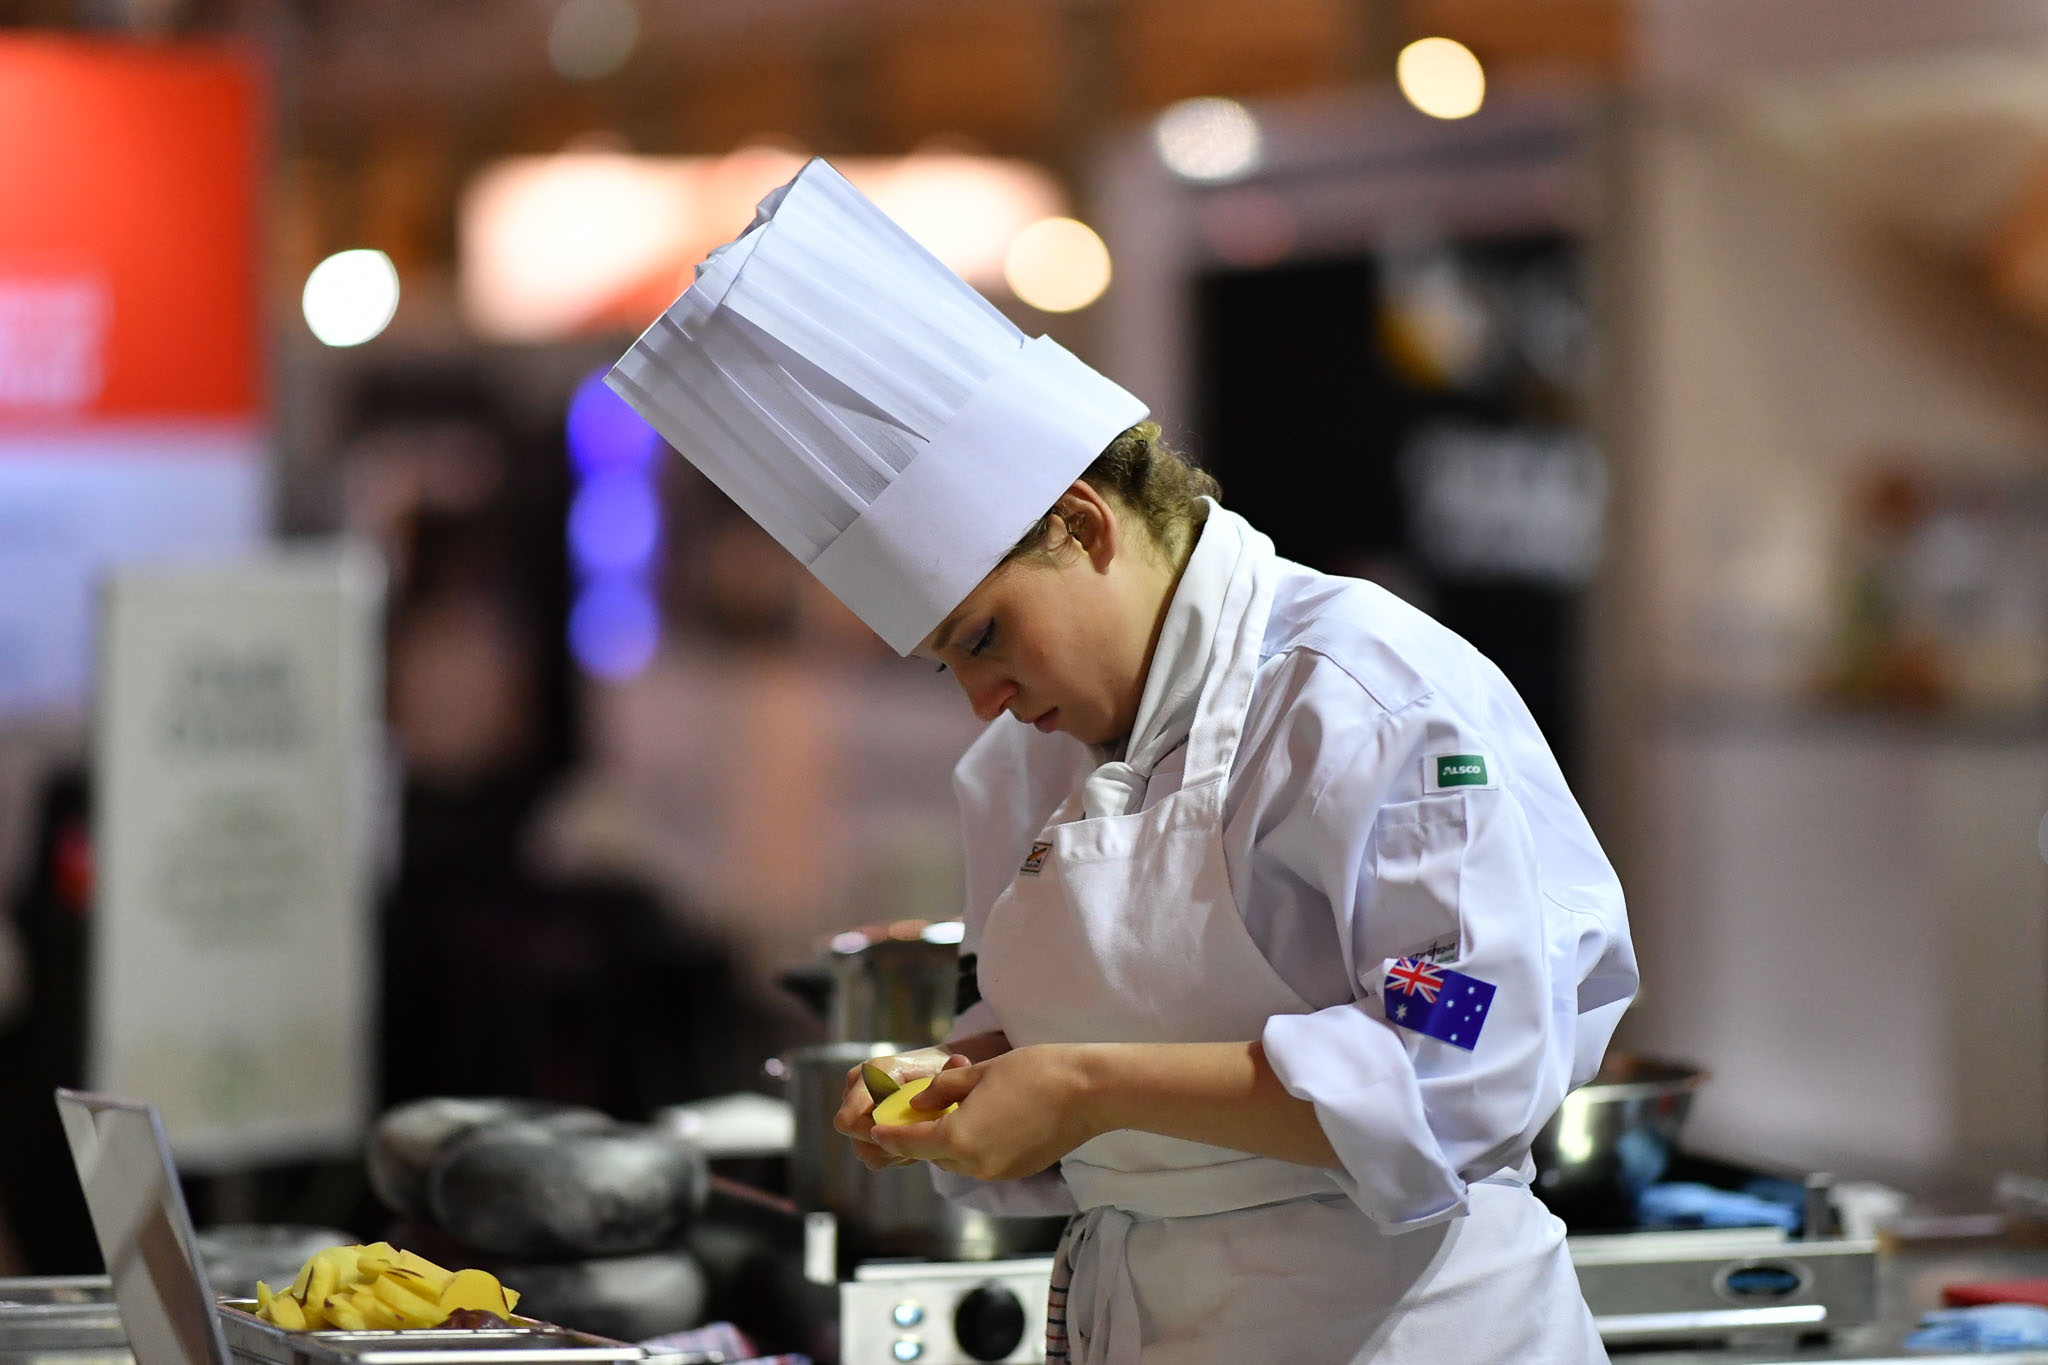 Melbourne, 30 May 2017 - Laura Skvor commis chef assisting Michael Cole of the Georgie Bass CafÈ & Cookery in Flinders prepares potatoes at the Australian selection trials of the Bocuse d'Or culinary competition held during the Food Service Australia show at the Royal Exhibition Building in Melbourne, Australia. Photo Sydney Low